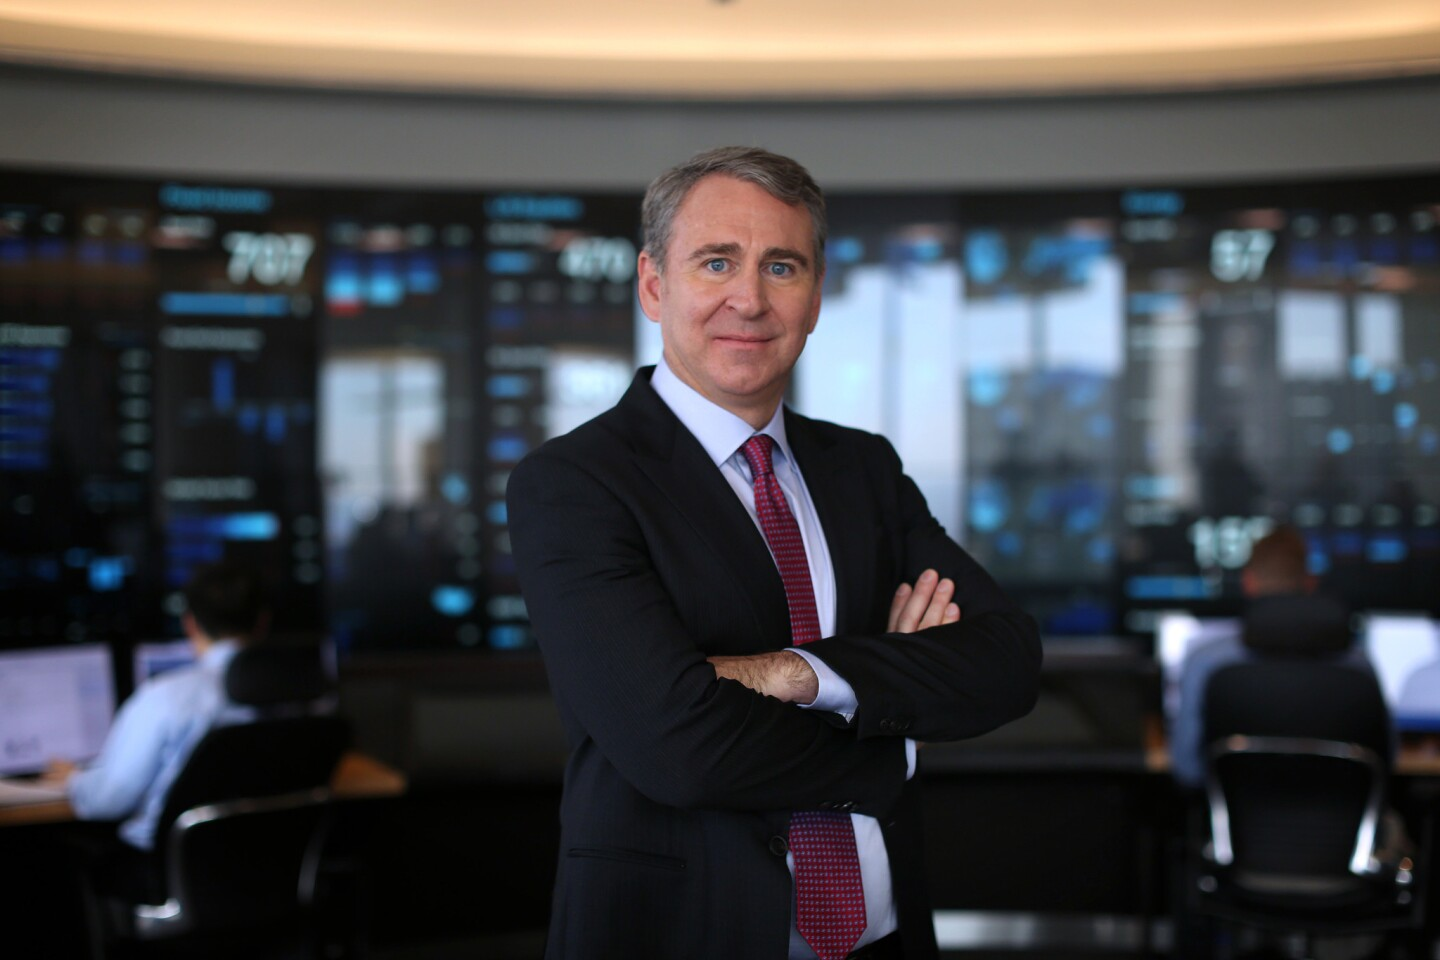 Ken Griffin, the founder and CEO of Citadel, is the richest person in Illinois, with a net worth of $10 billion. That makes him the 45th richest person in the country, according to Forbes.